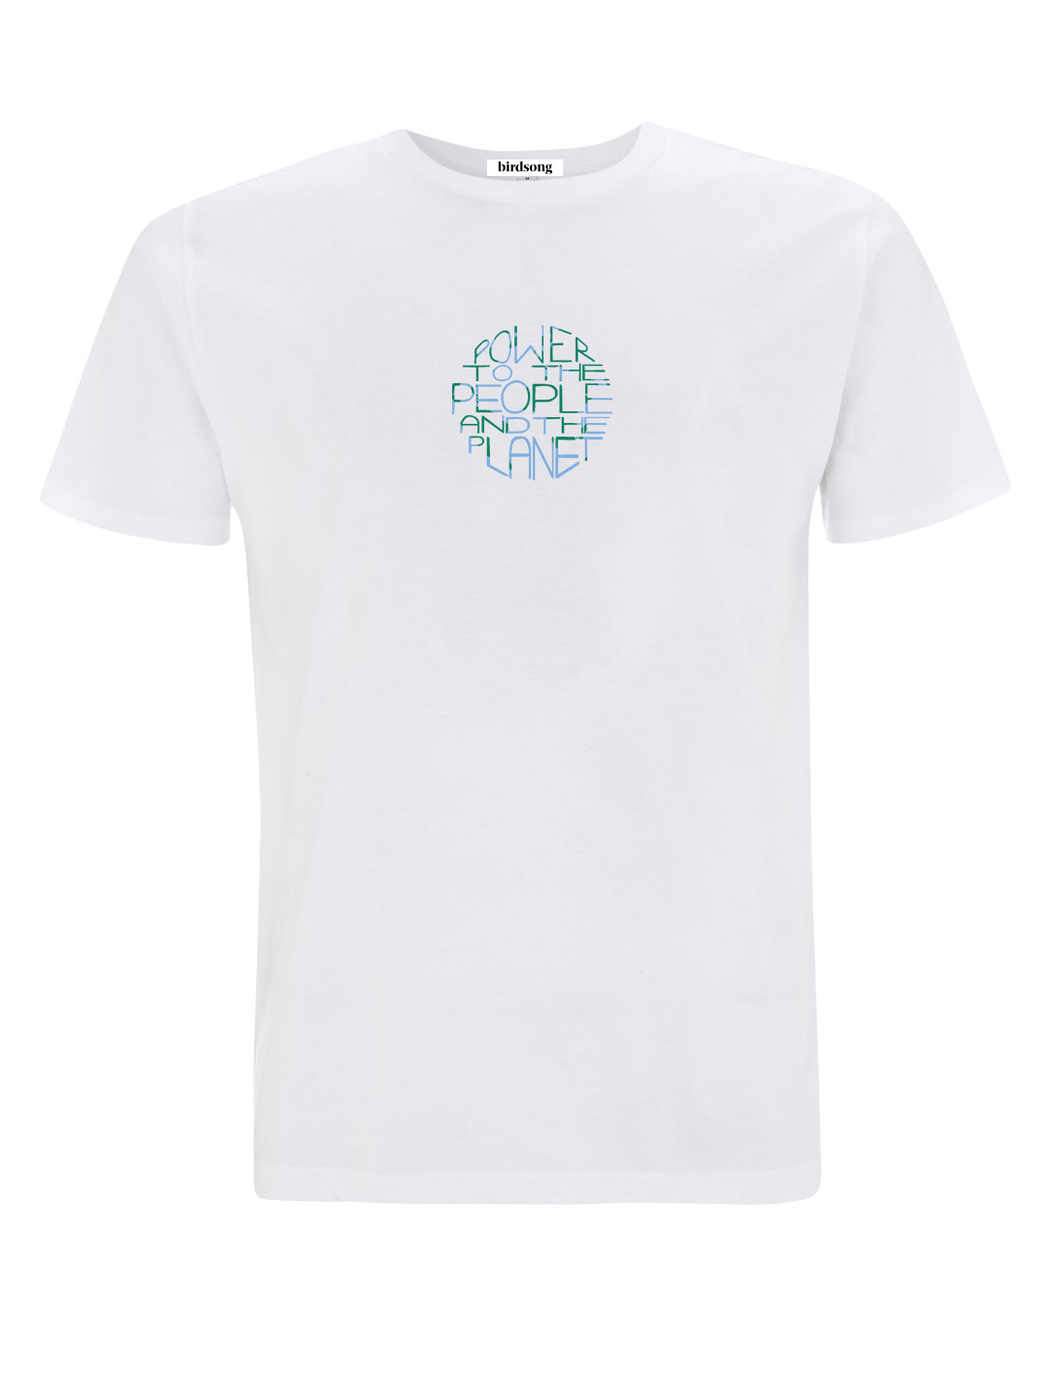 Power to the People and the Planet Organic Cotton T-shirt CLOTHING BIRDSONG